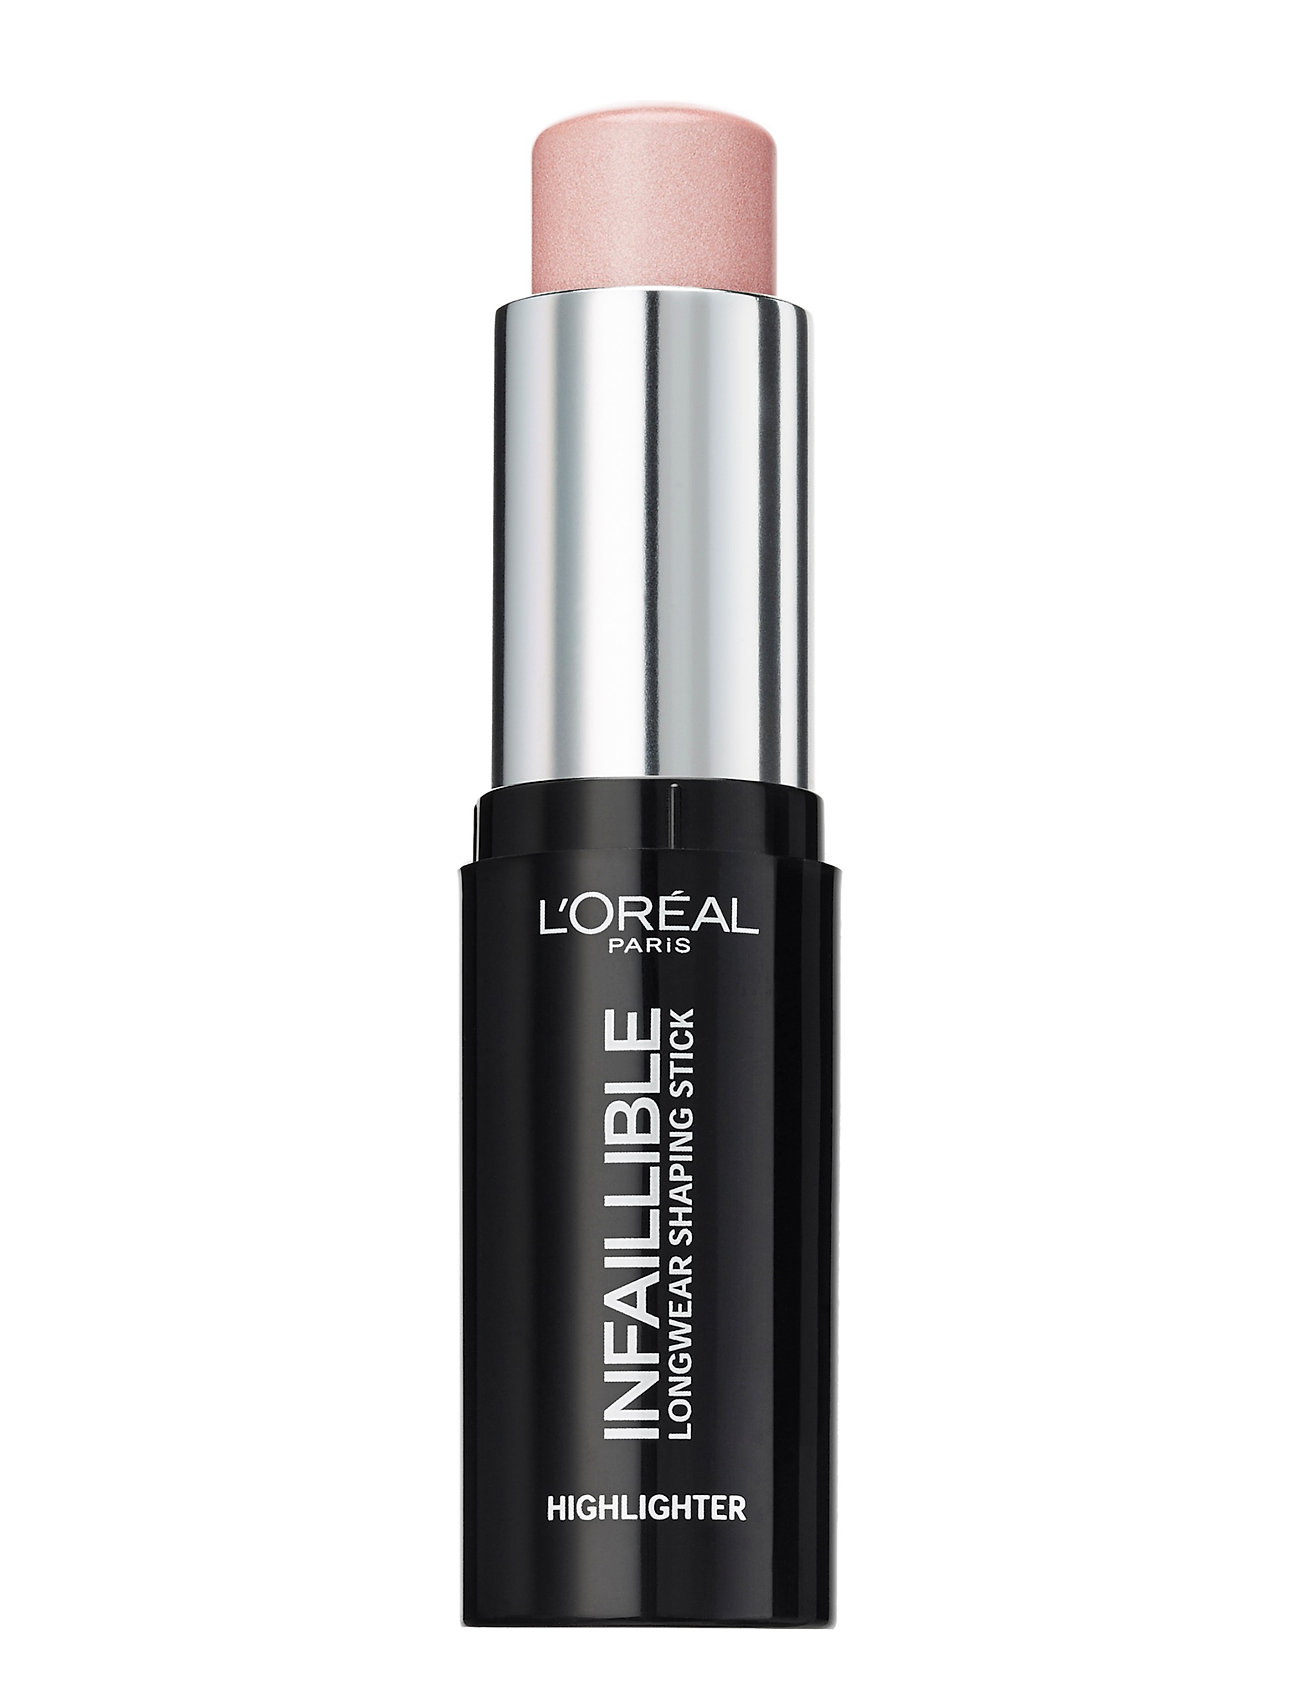 L'Oréal Paris Infallible Stick Highlighter - 503 SLAY IN ROSE